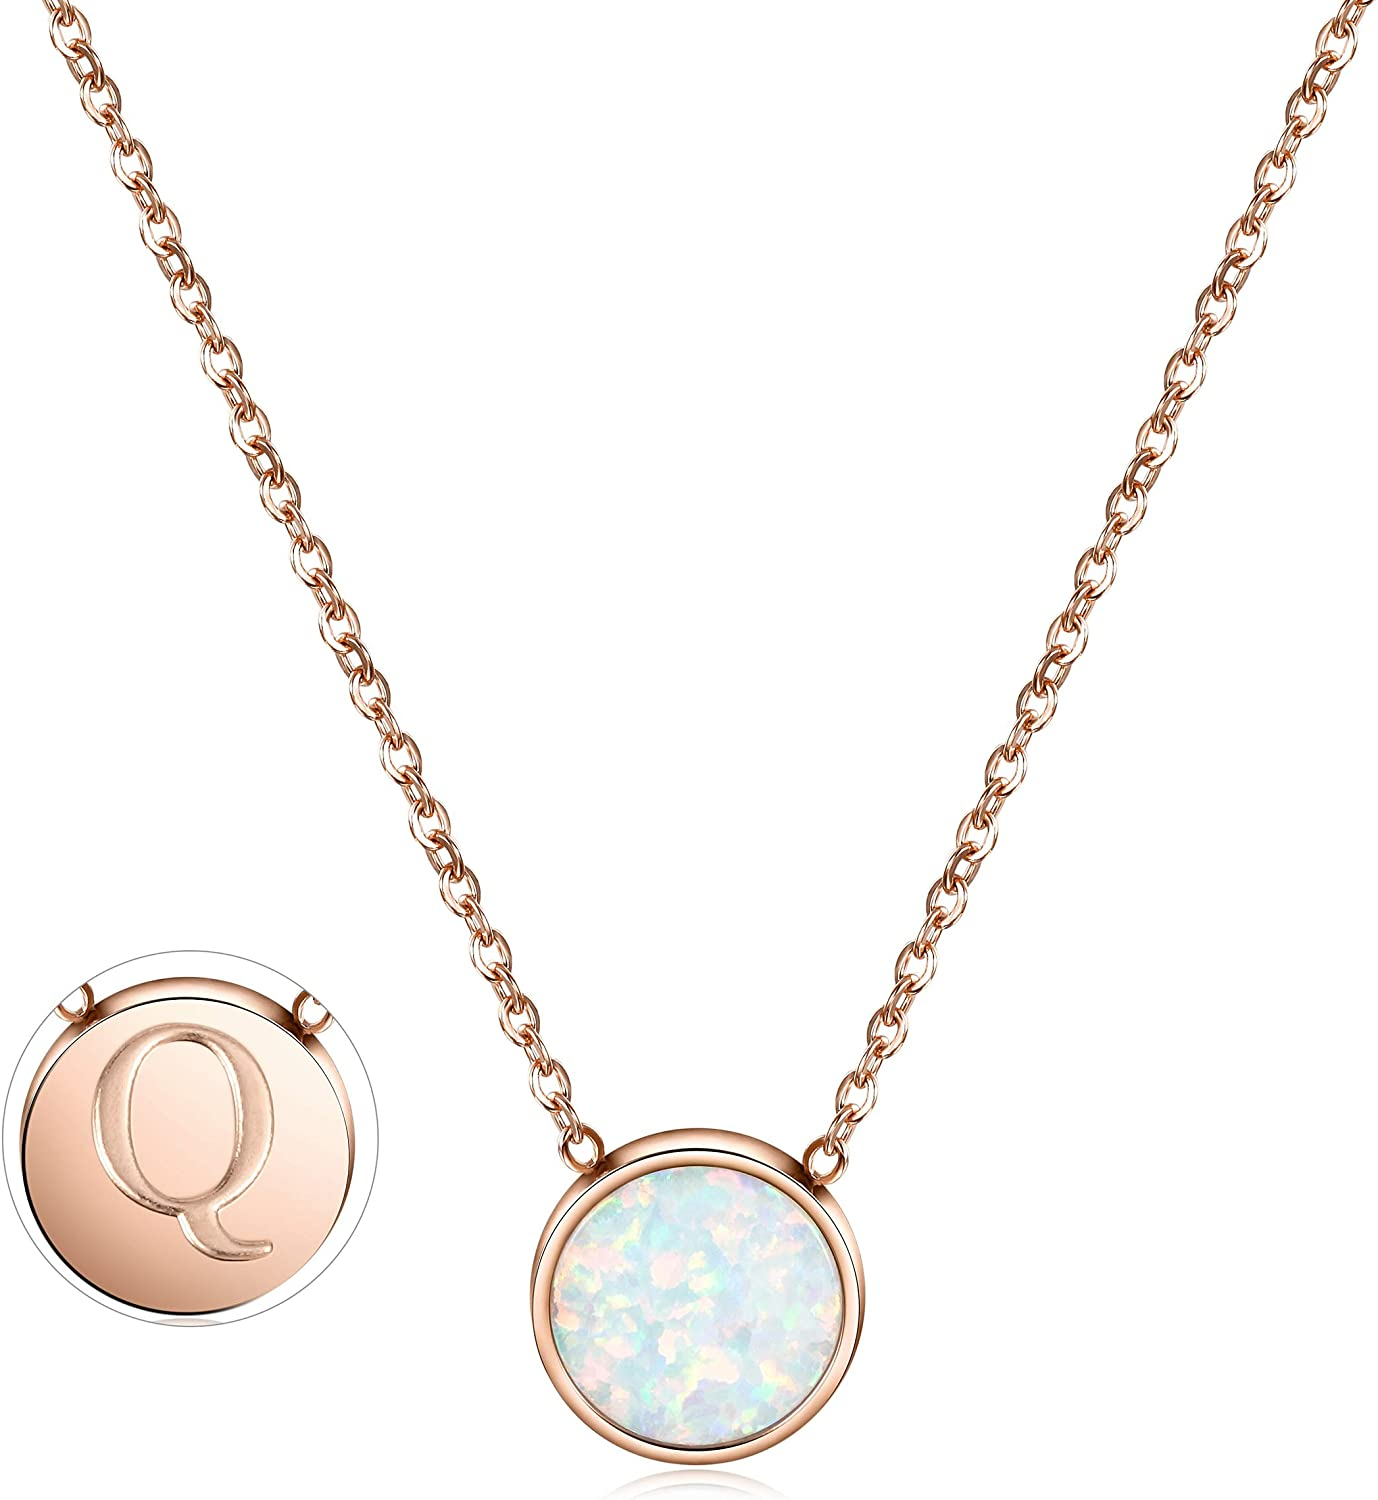 CIUNOFOR Opal Necklace Gold Plated Round Disc Initial Necklace Engraved Letter with Adjustable Chain Pendant Enhancers for Women Girls